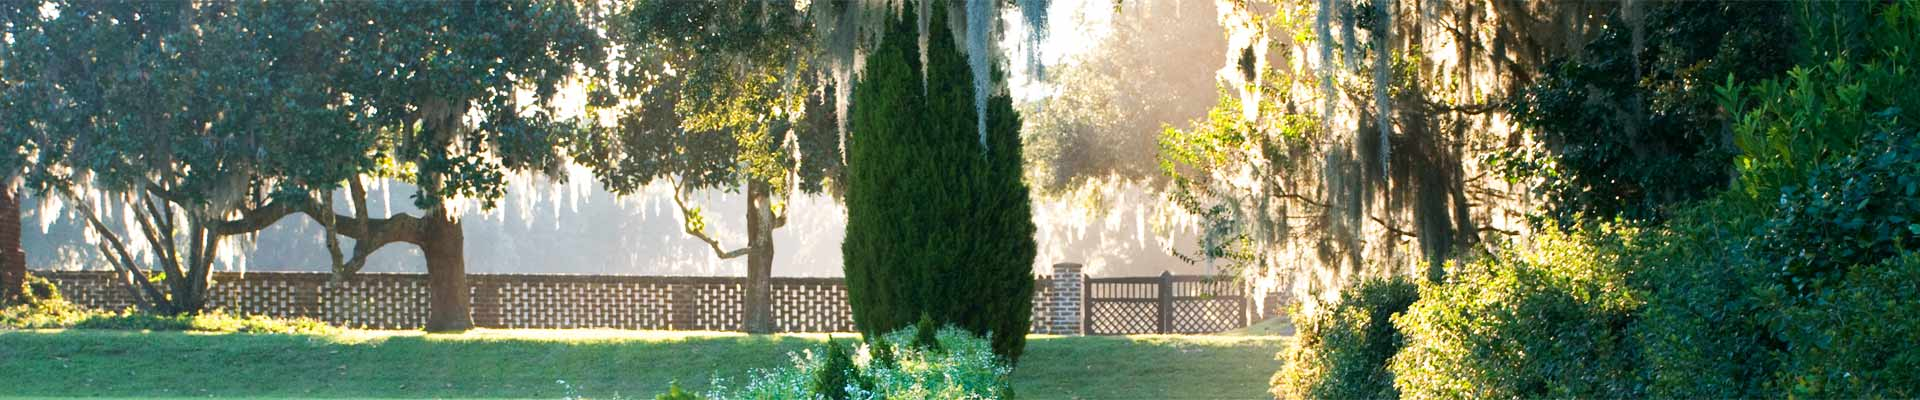 Gardens of the Lowcountry rely on All Seasons Mulch